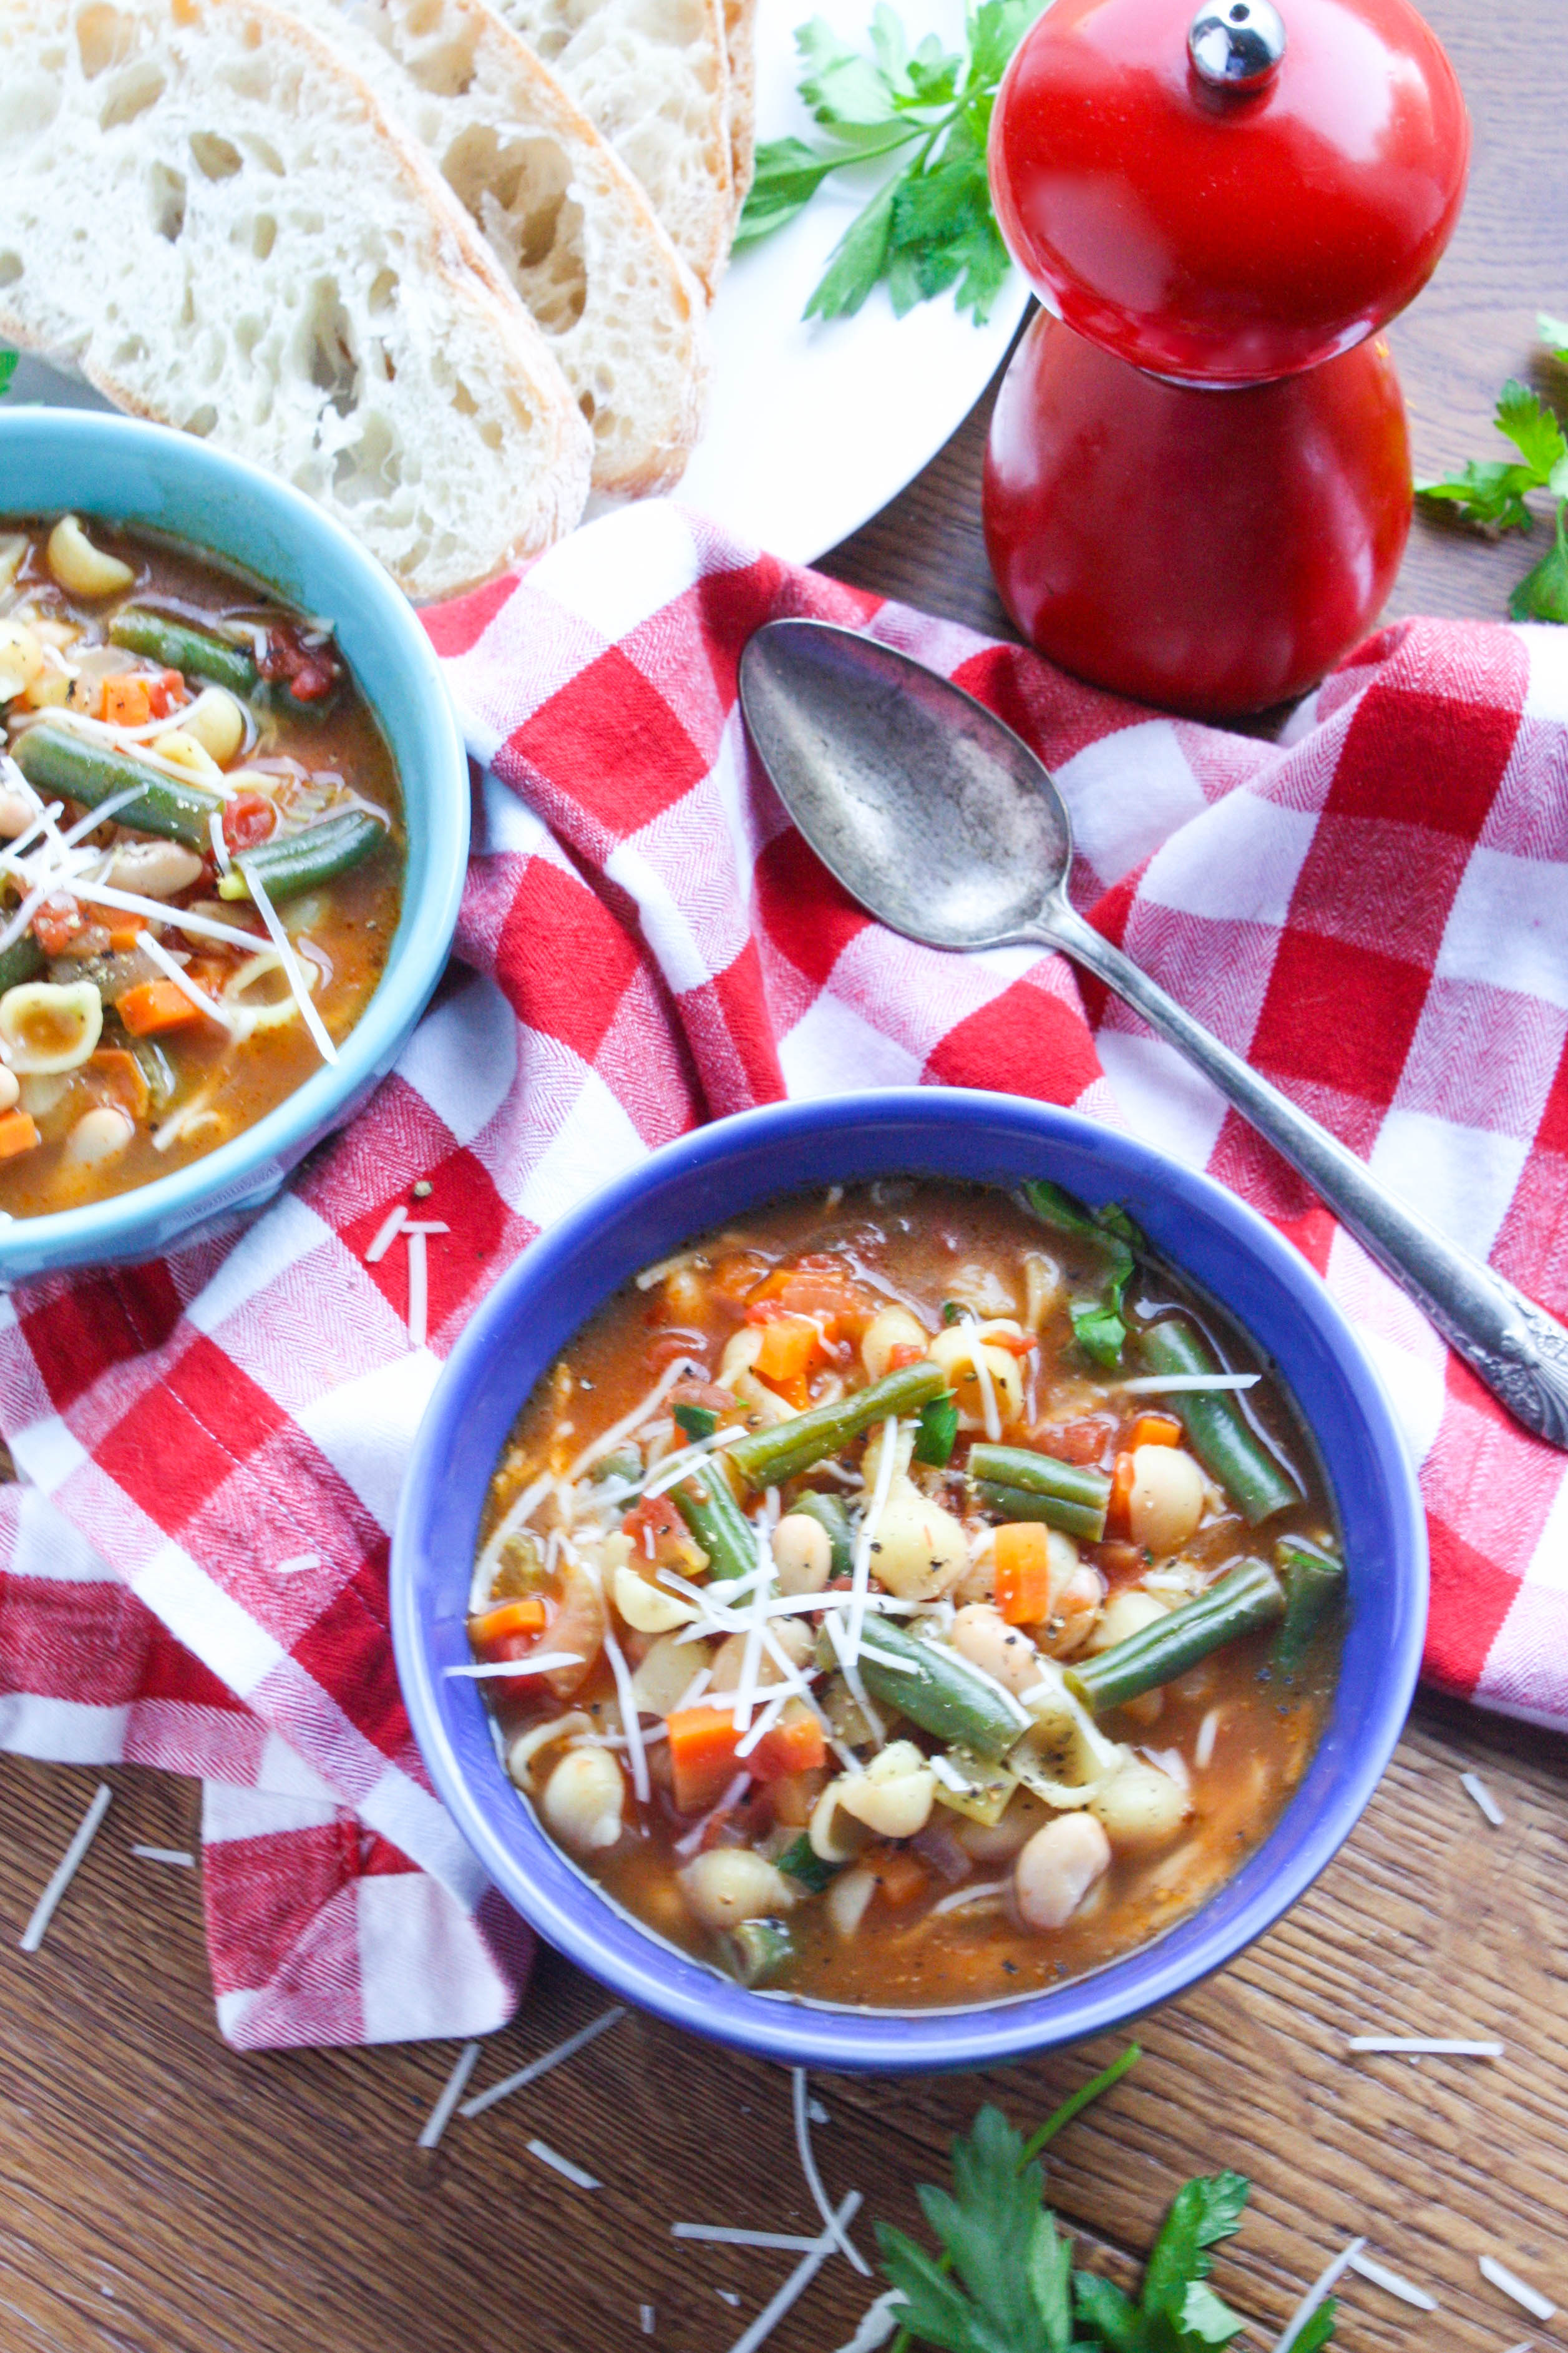 Minestrone Soup is filled with veggies, beans, and pasta. You'll love minestrone soup as a tasty meatless dish.